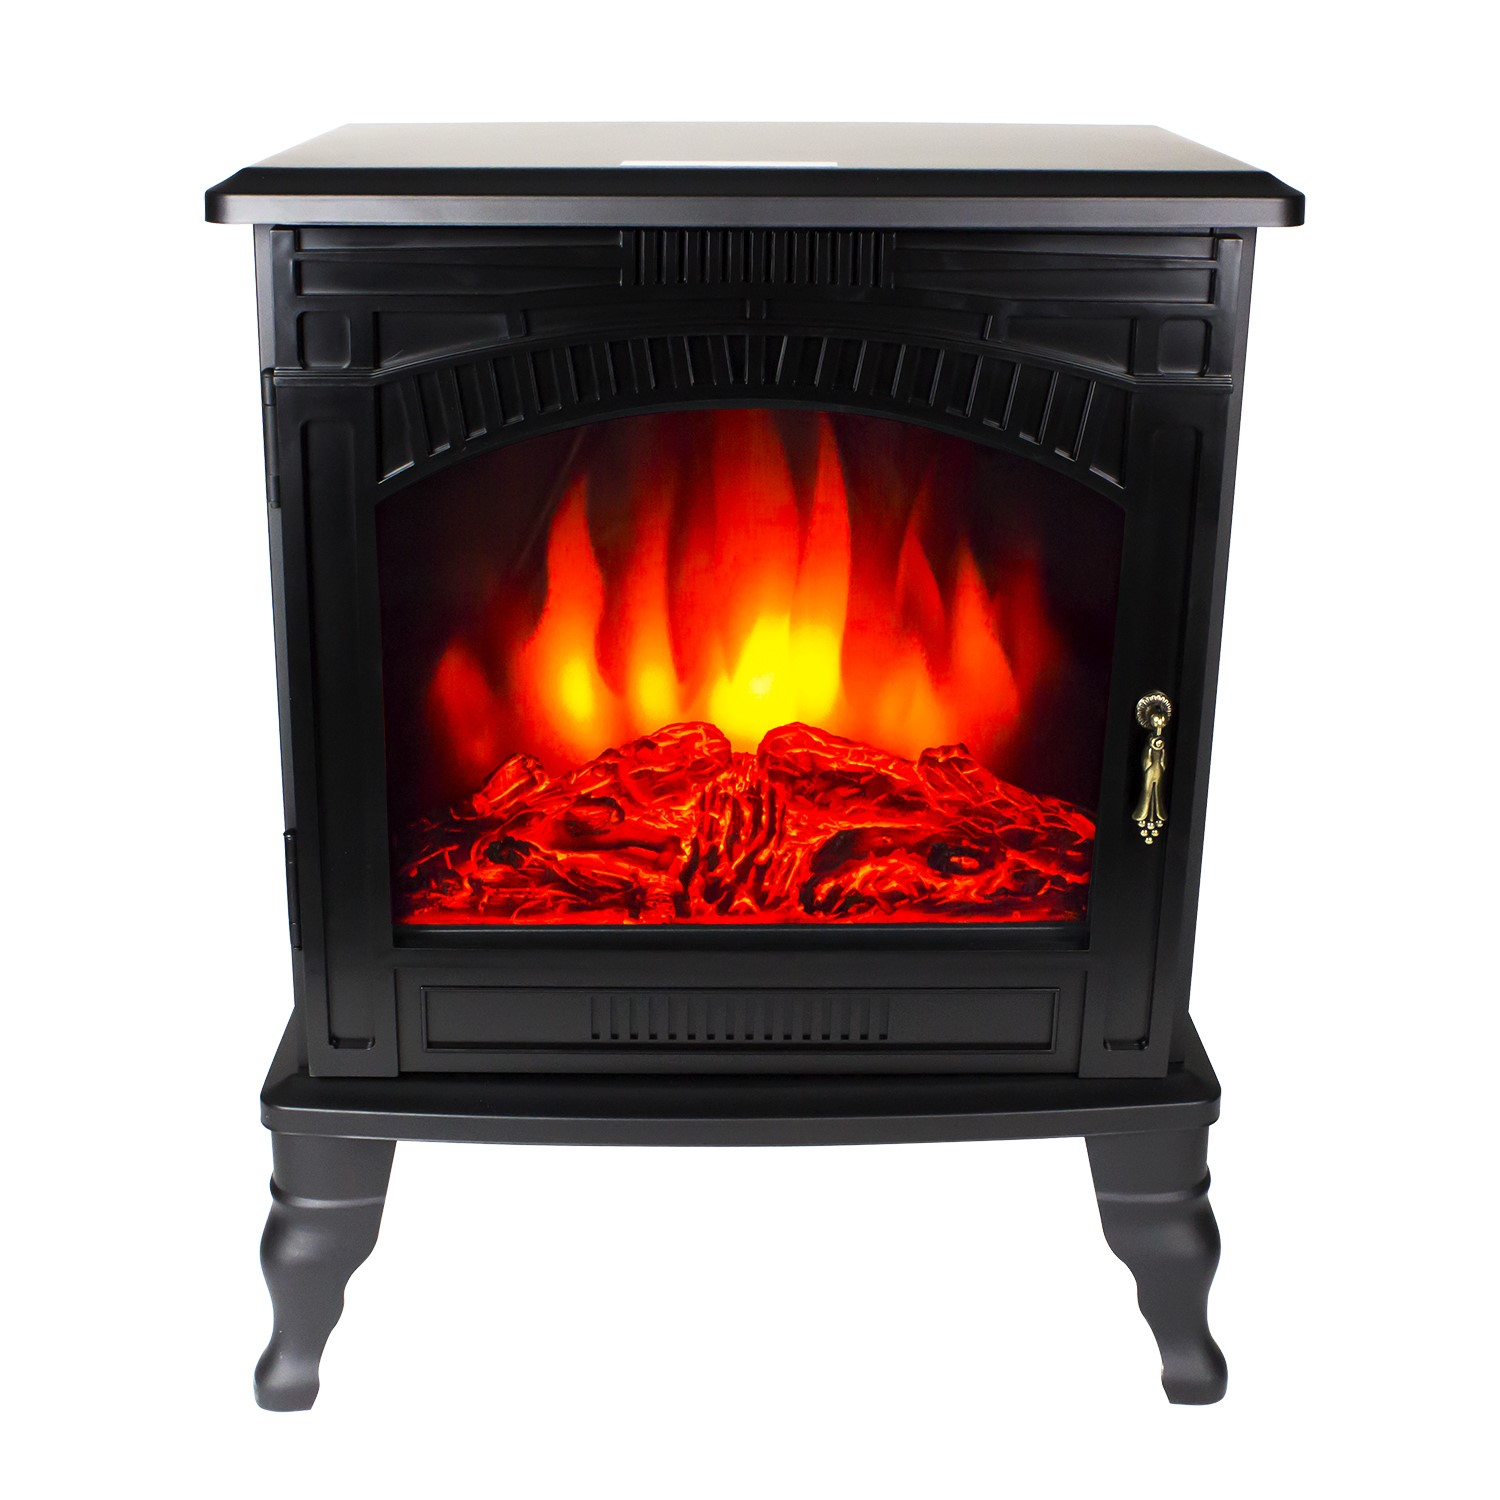 Grade A1 Amberglo Large Electric Wood Burning Stove Fire